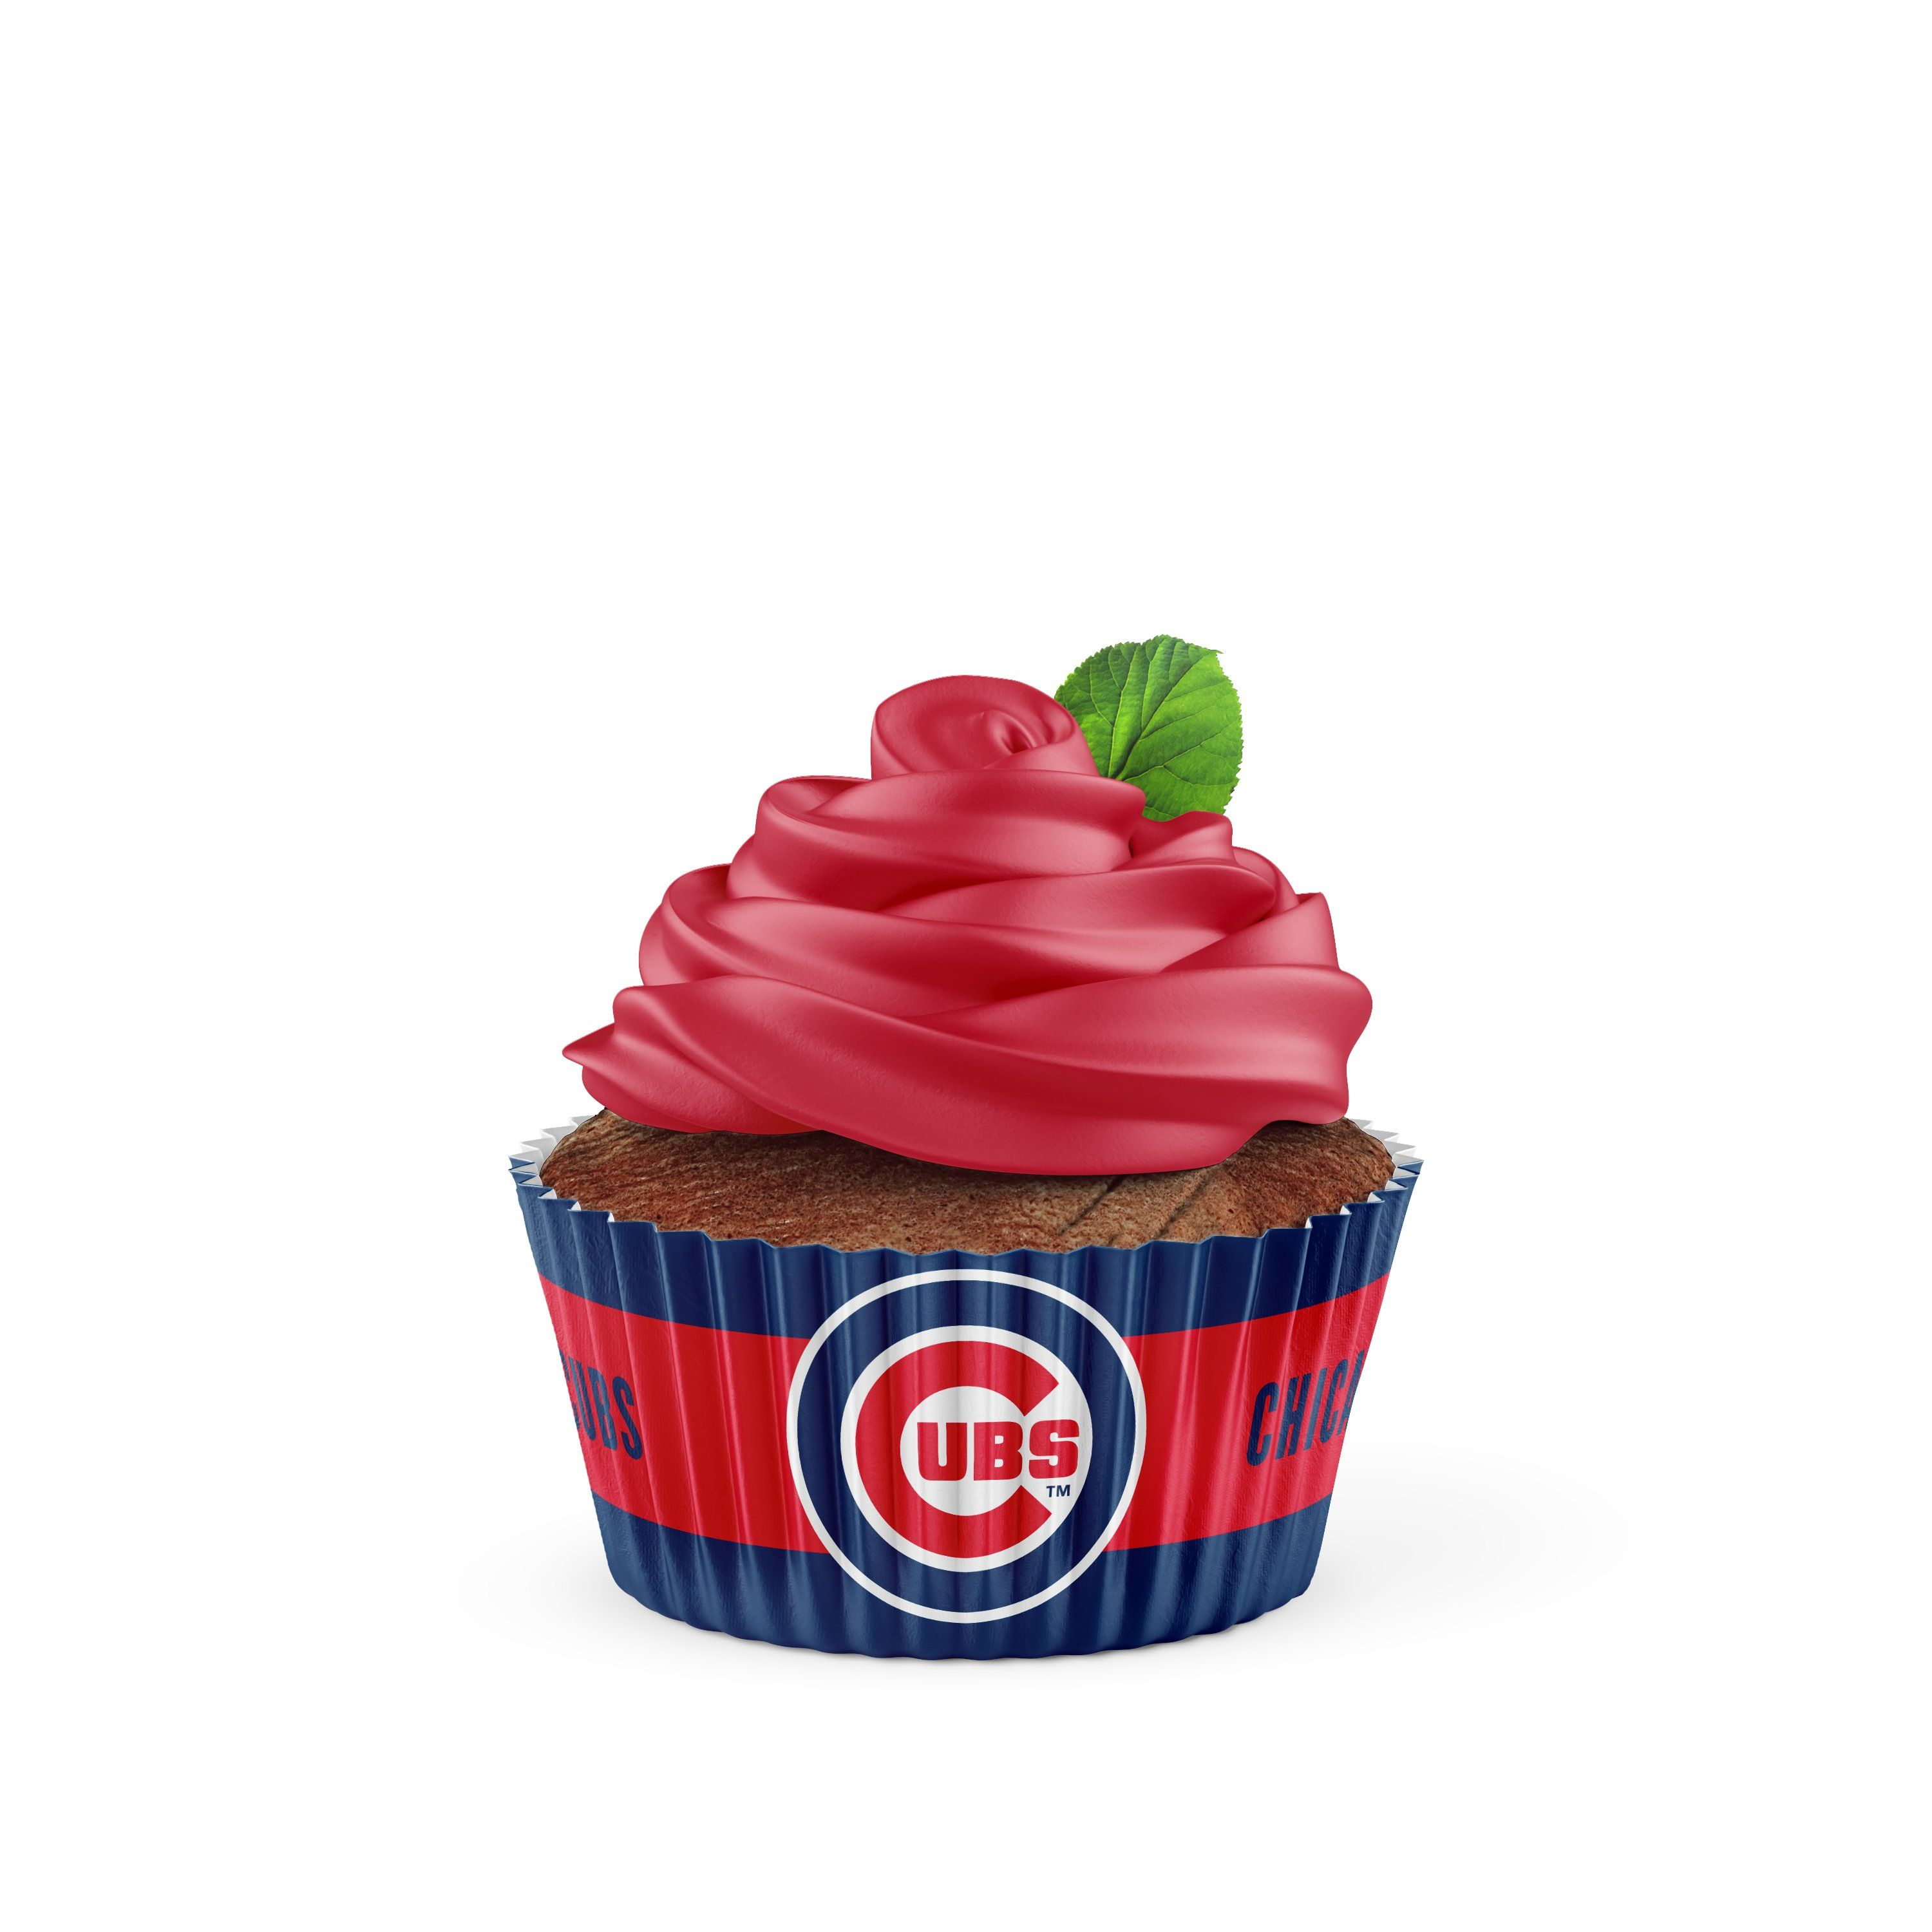 Chicago Cubs Baking Cups Large 50 Pack Baking Cups Crunch Cereal Baking